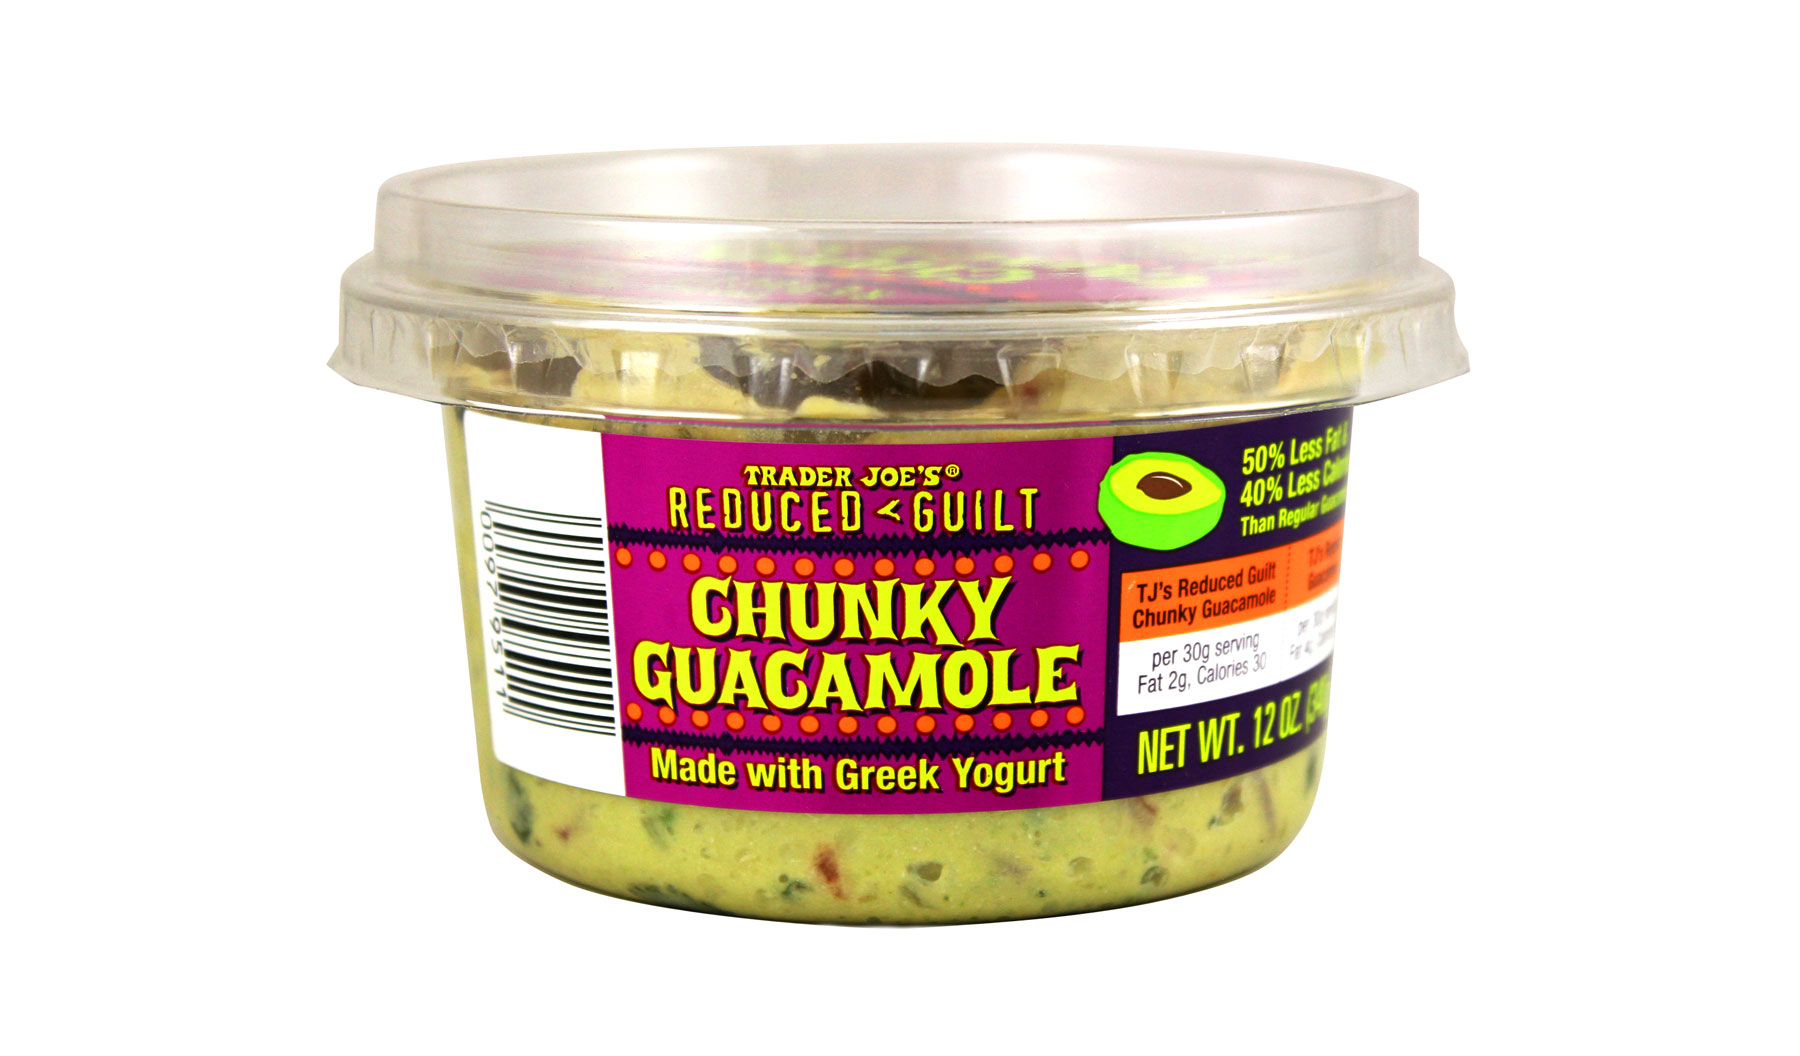 Trader Joe's products/editors' picks - Trader Joe's Reduced Guilt Chunky Guacamole with Greek Yogurt